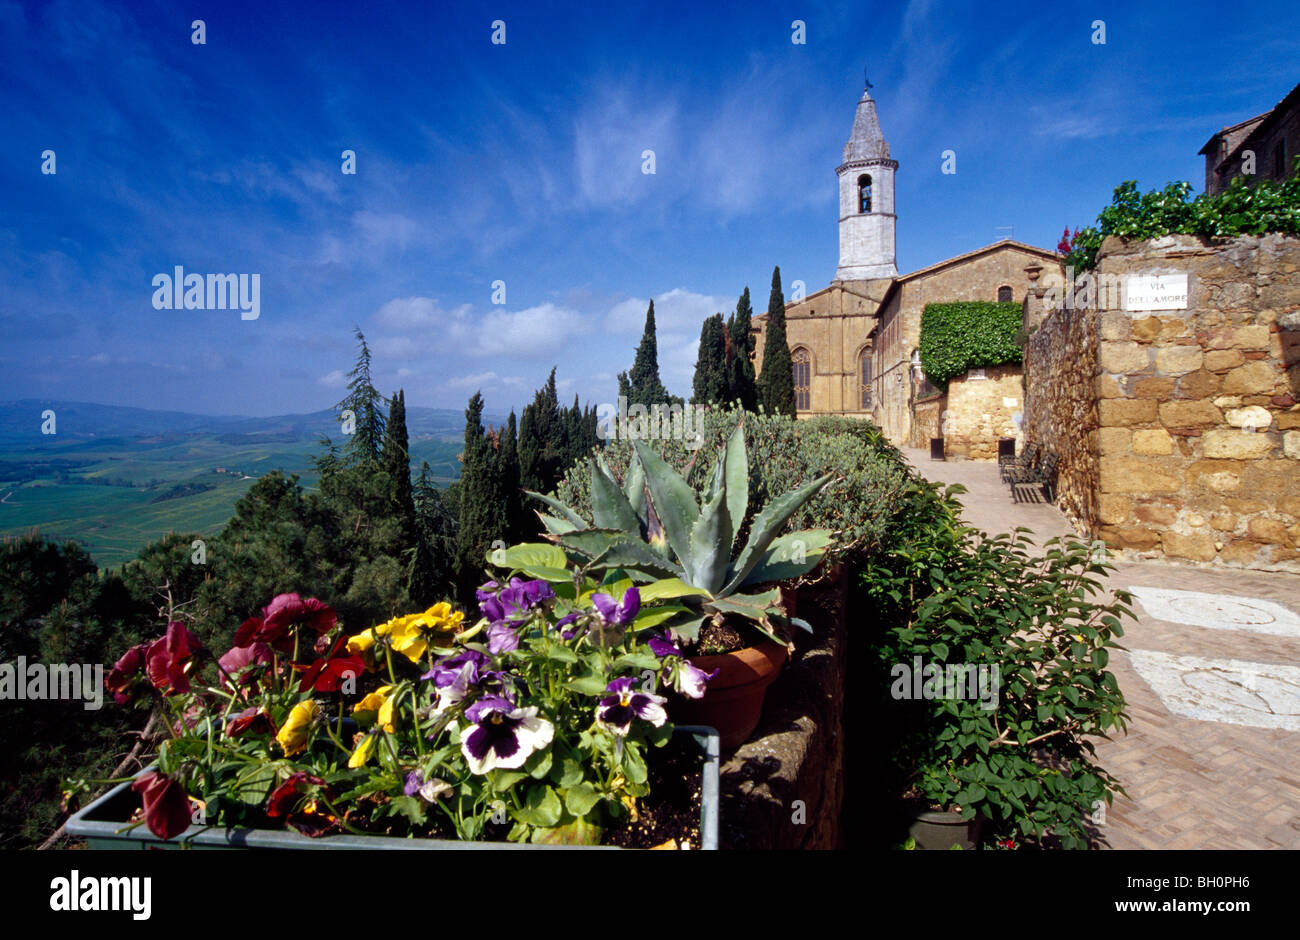 View at a church in the sunlight, Via dell´Amore, Pienza, Val d´Orcia, Tuscany, Italy, Europe - Stock Image